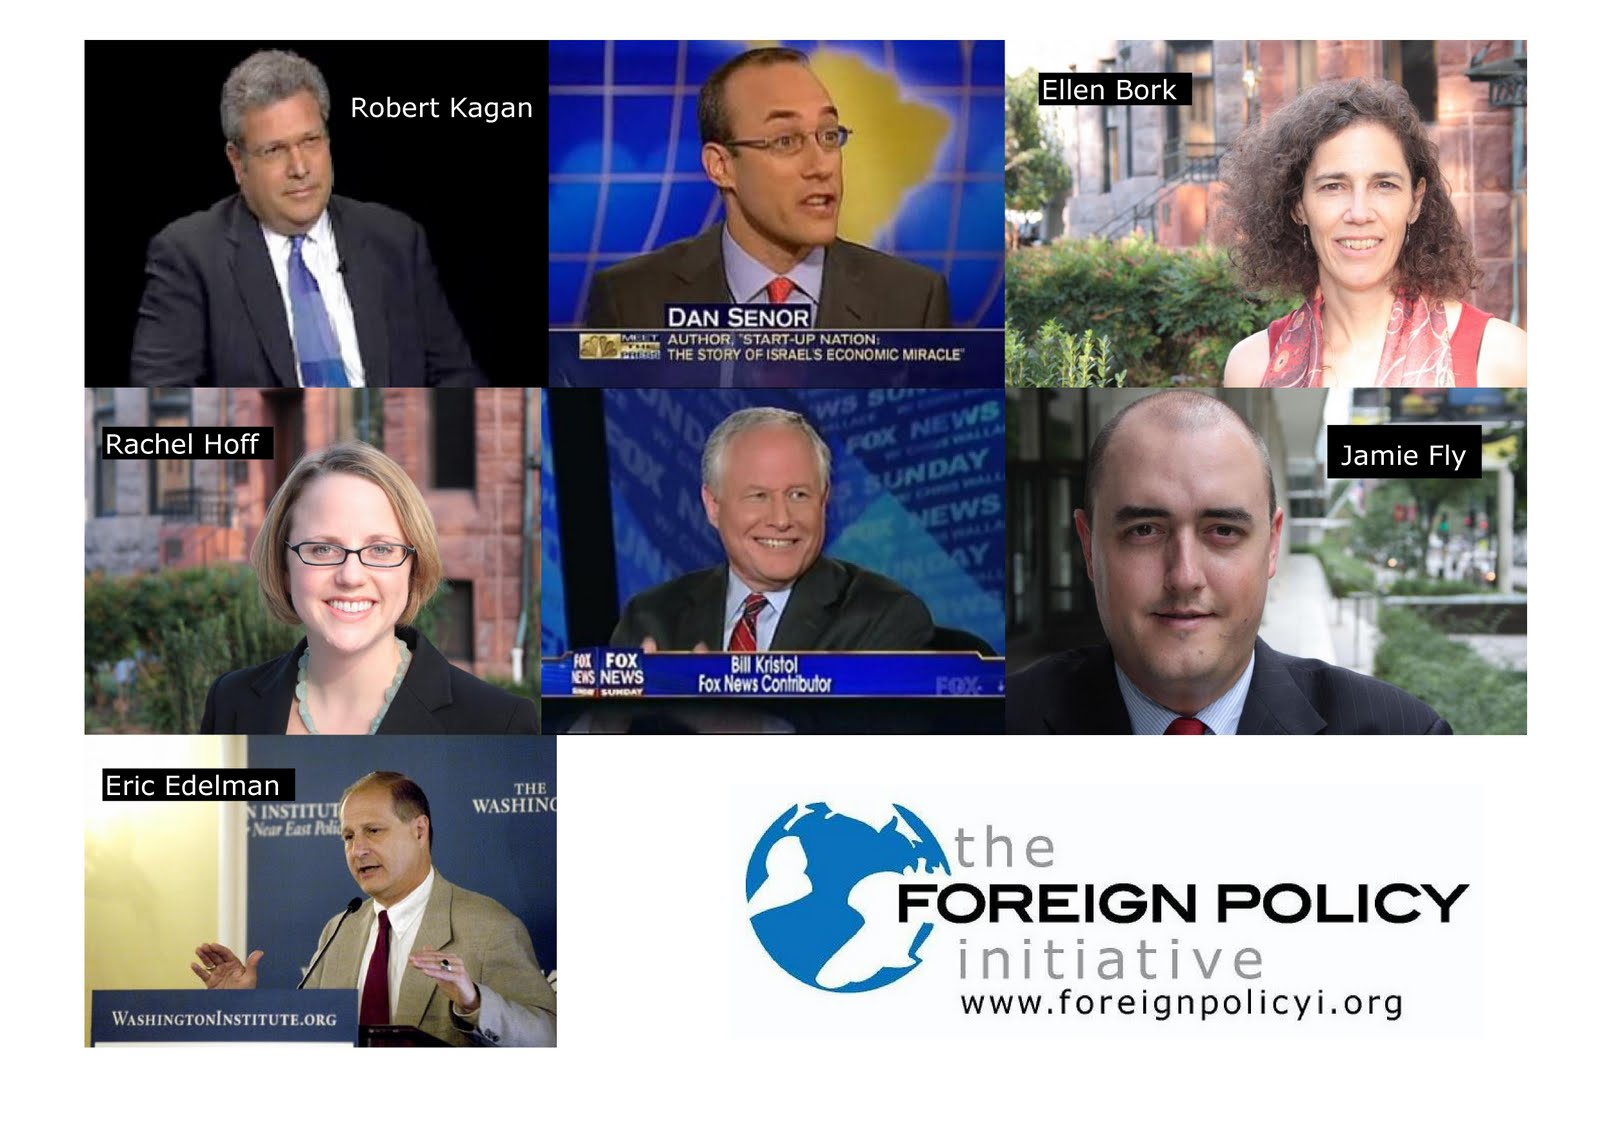 foreign-policy-initative